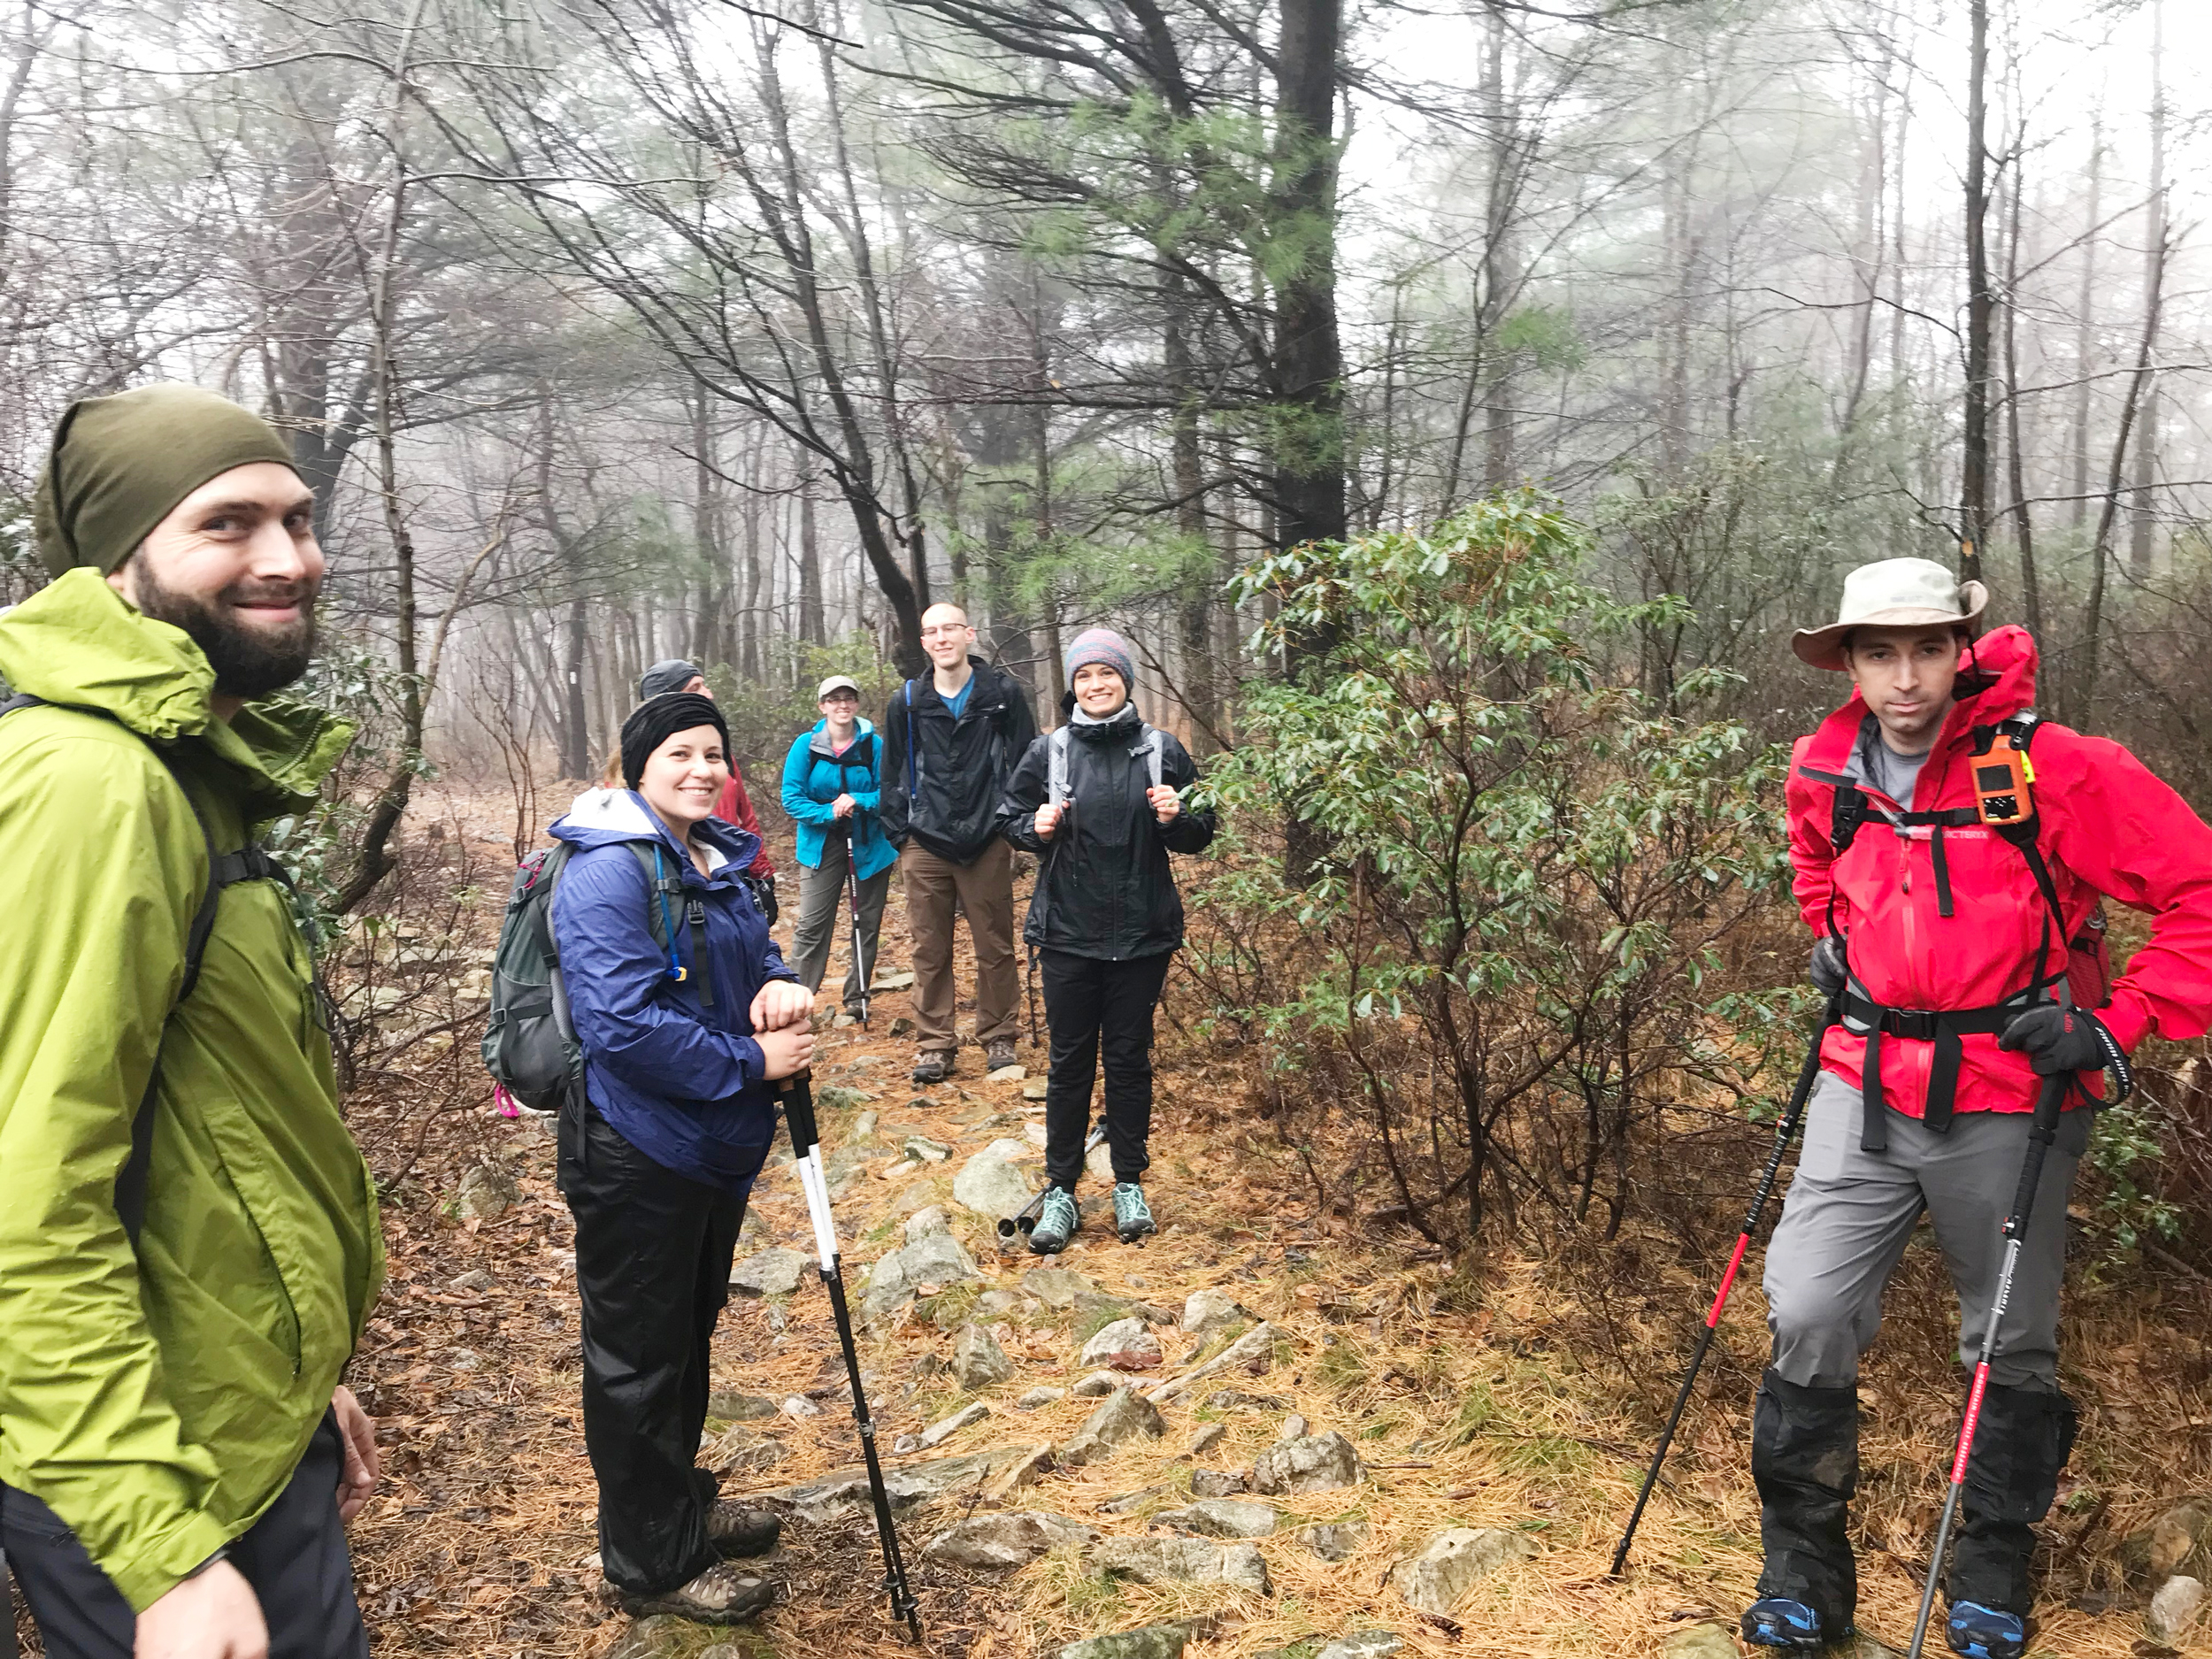 a group of AMC hikers